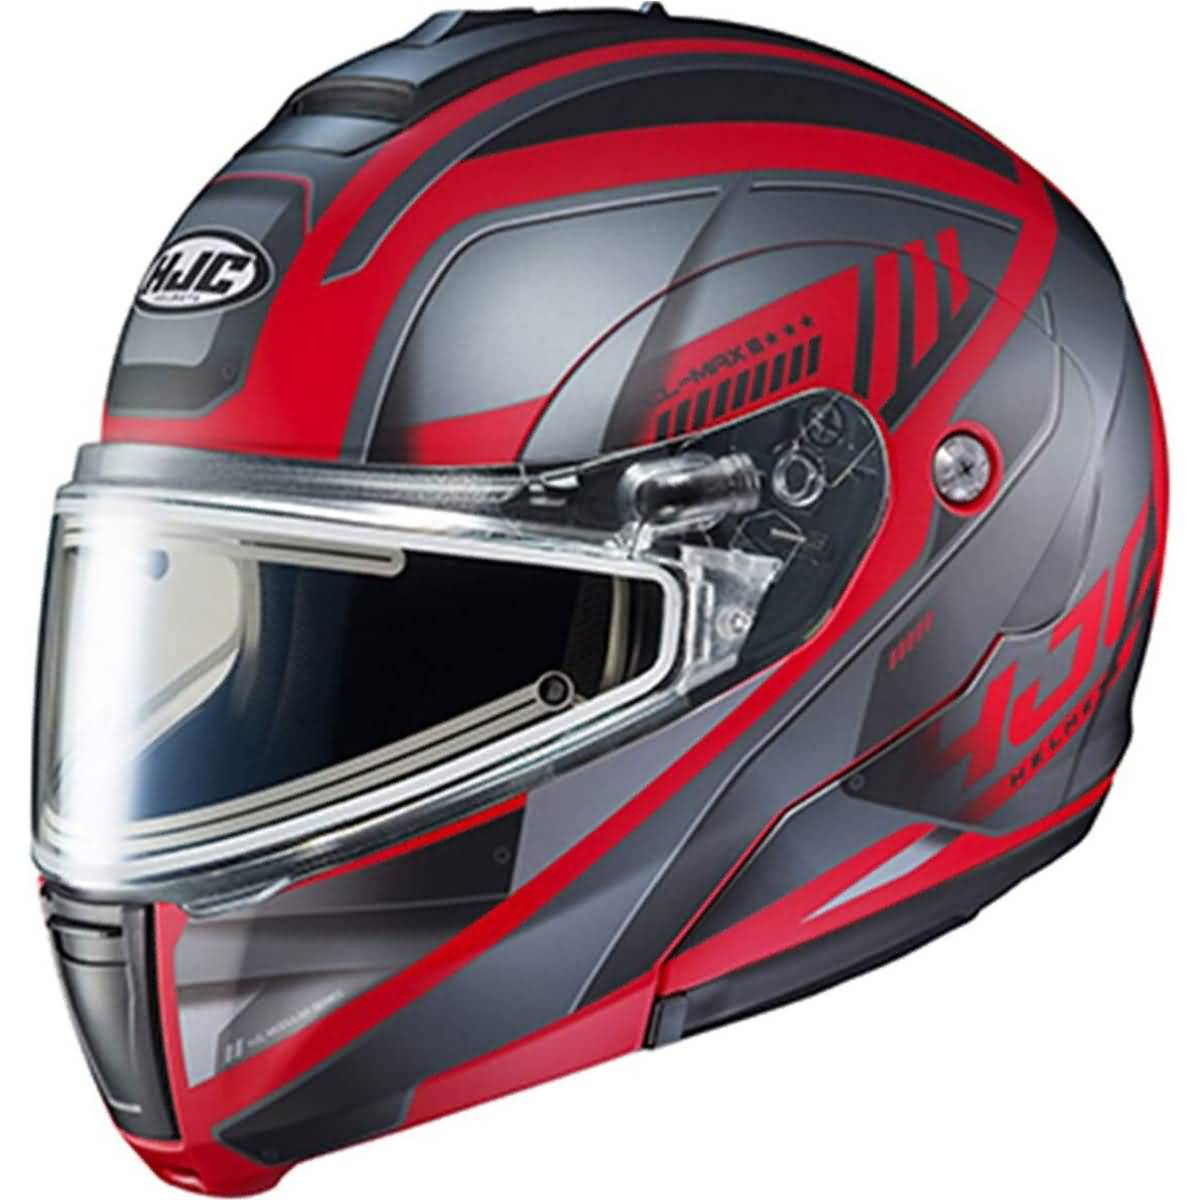 HJC CL-Max 3 Gallant Electric Shield Adult Snow Helmets-1246